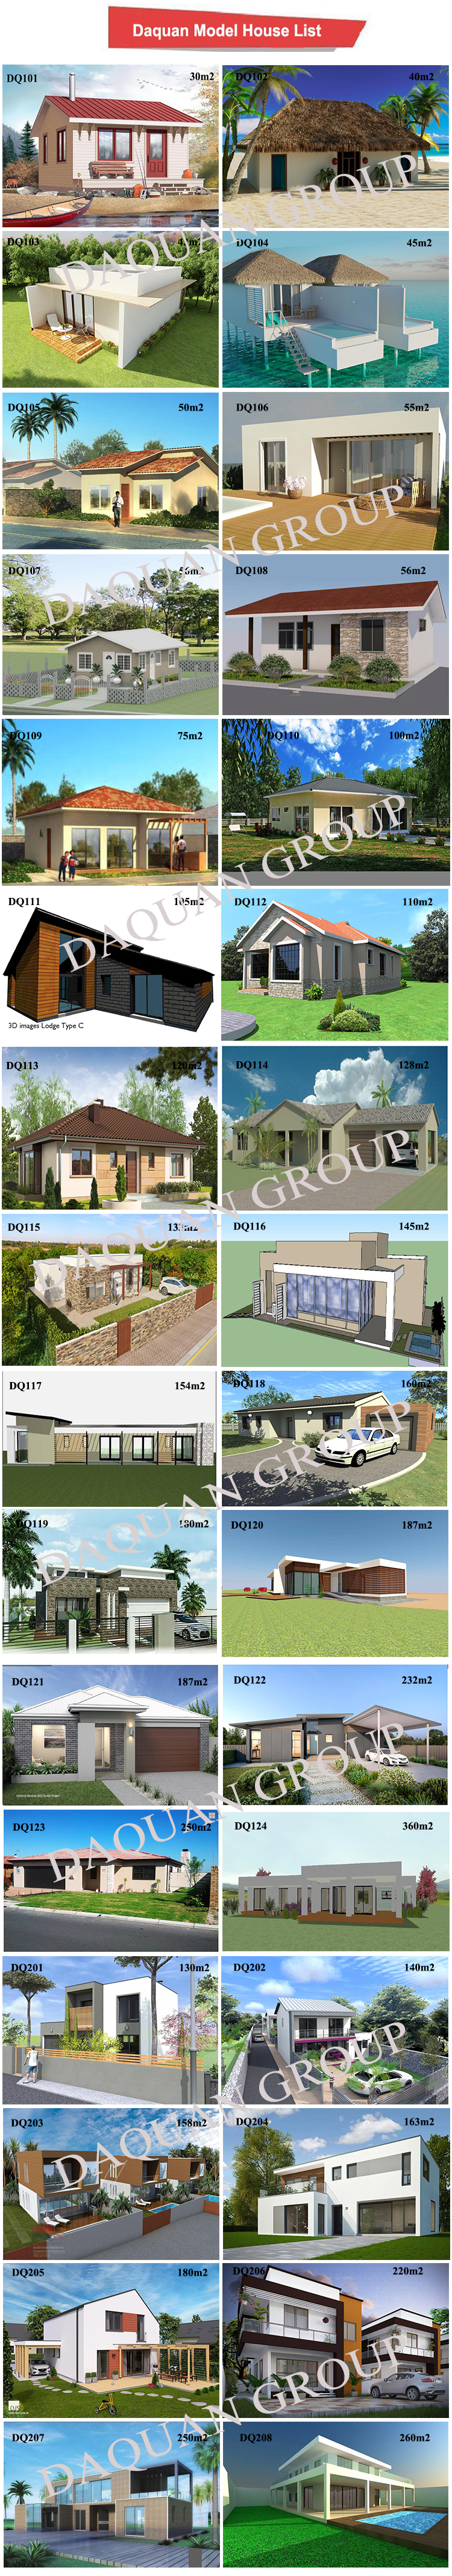 affordable prefabricated luxury prefab modular house prices 280m2 2-storey